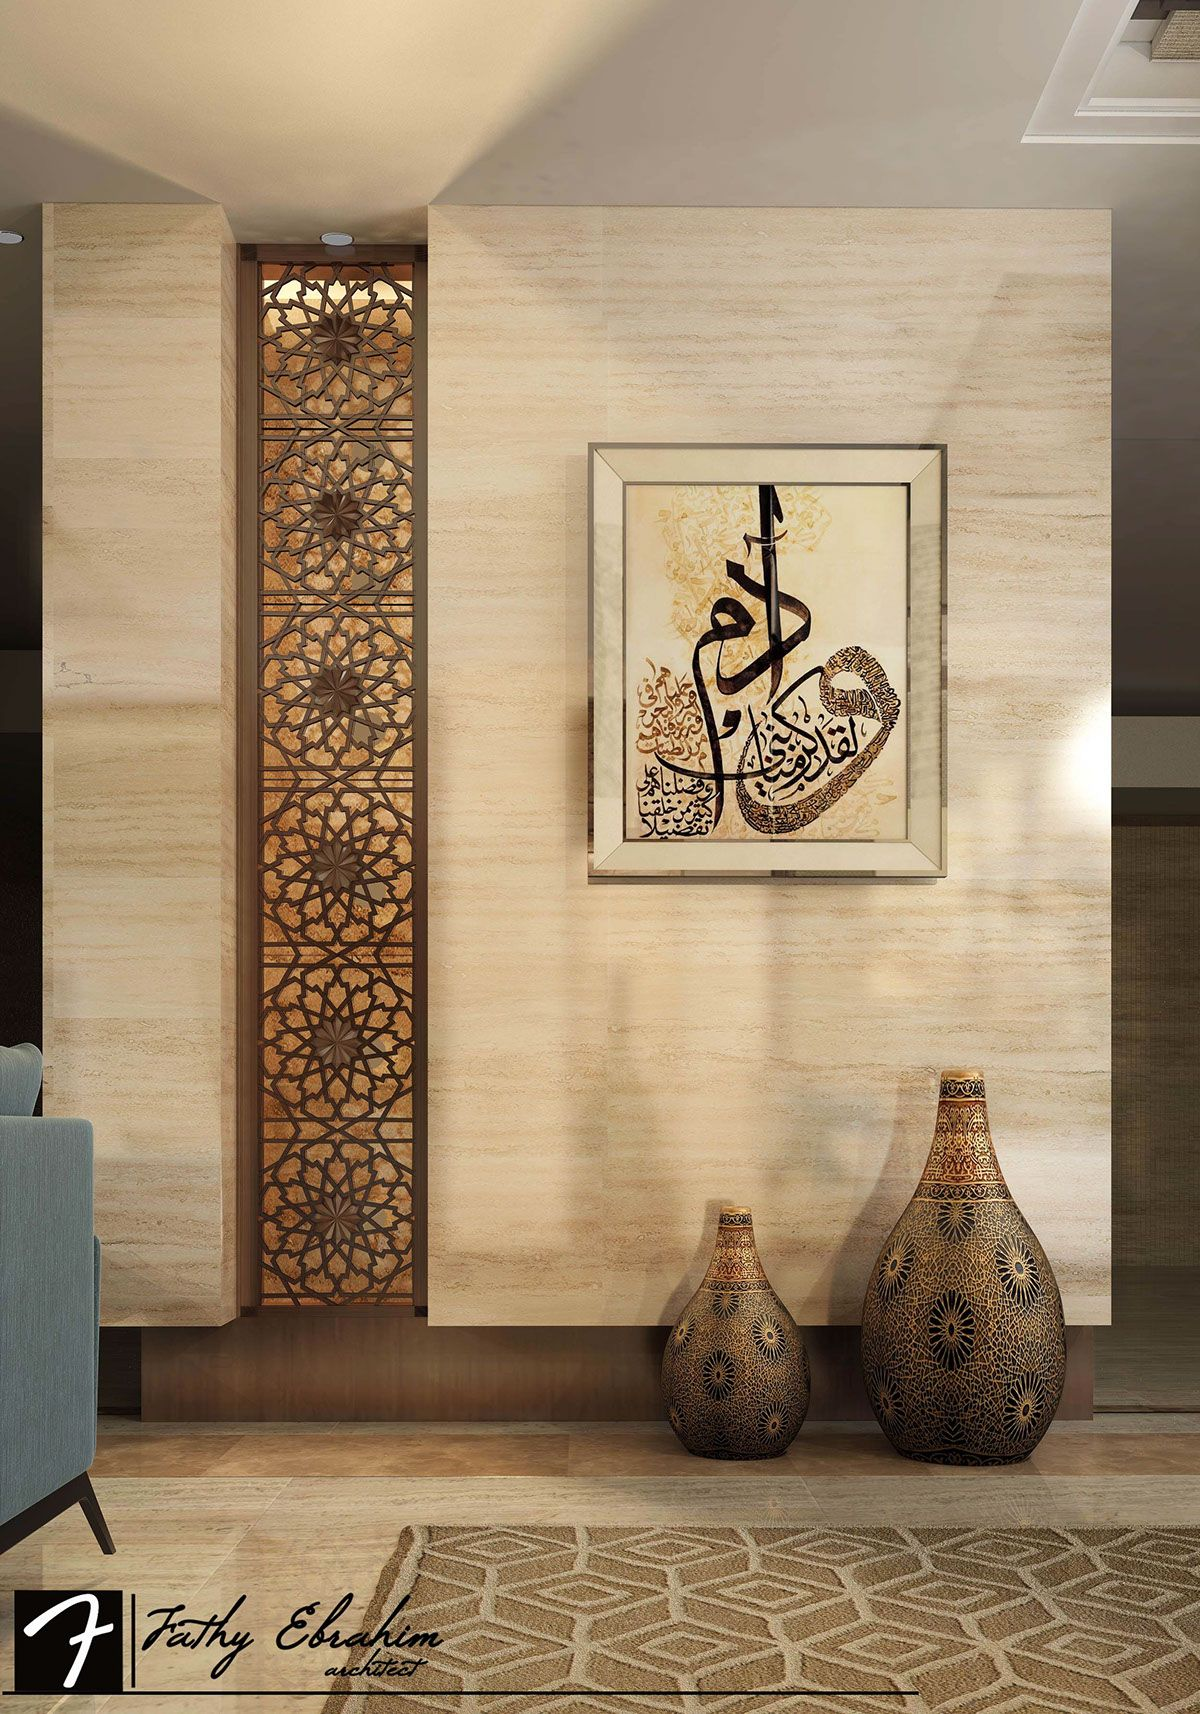 Modern Islamic Interior Design On Behance Home Interior Design